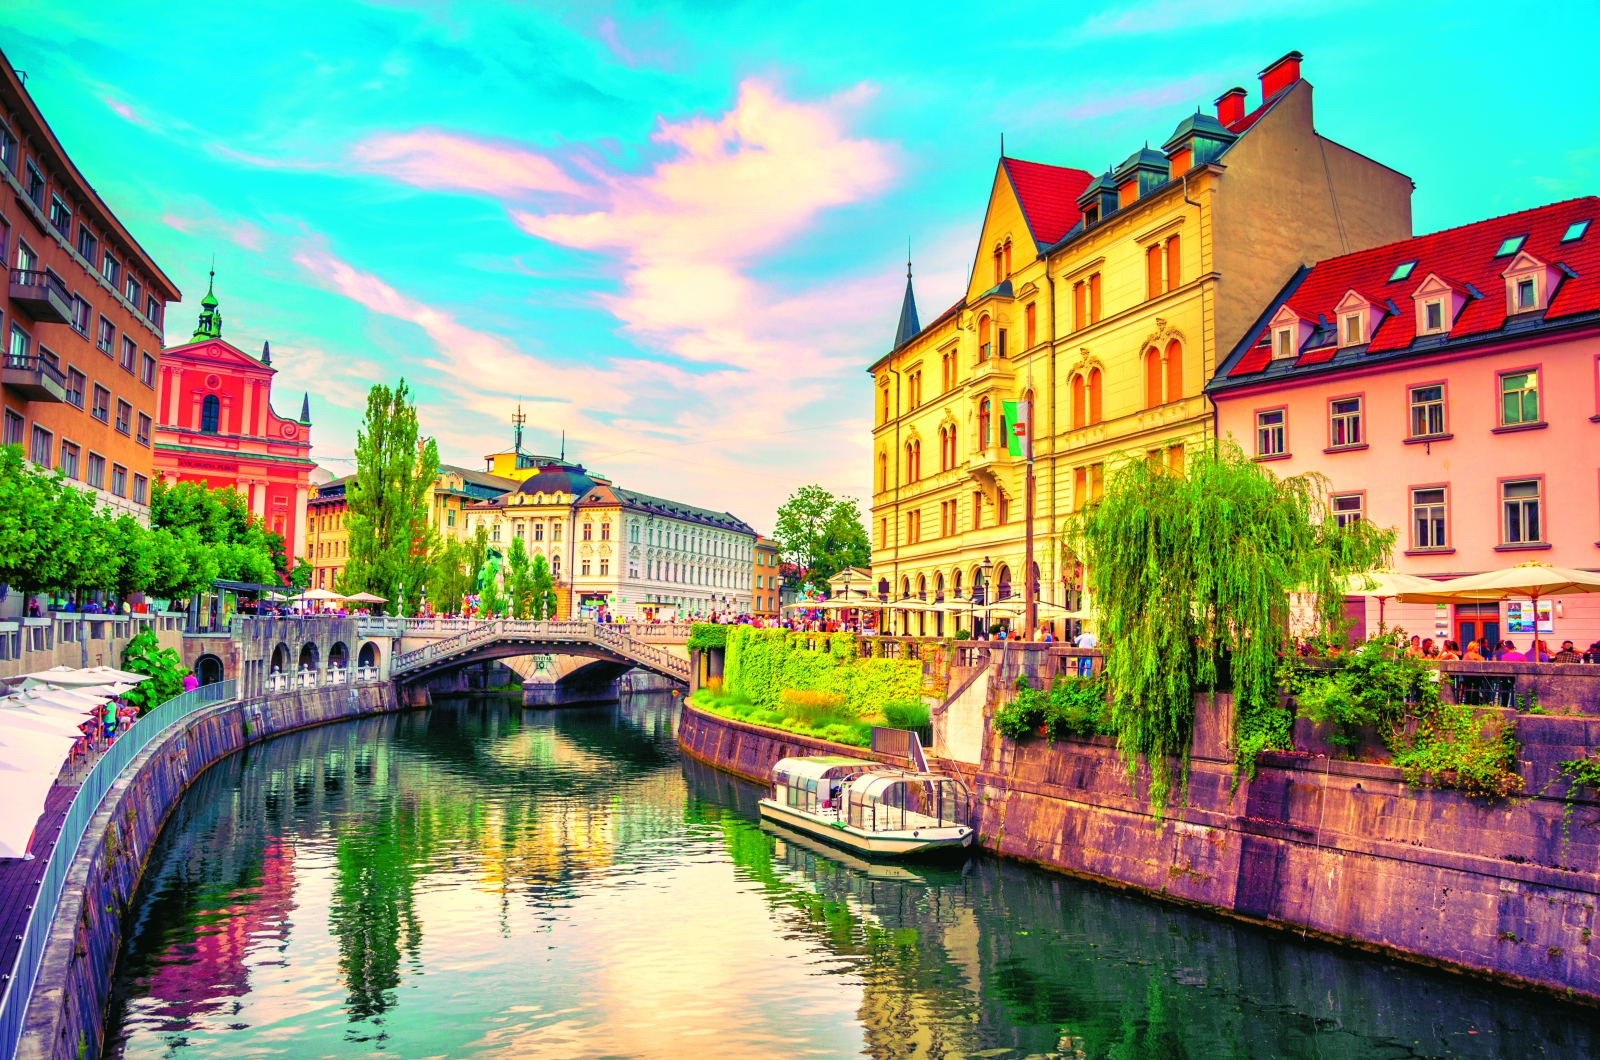 Ljubljana city guide: 48 hours in Europe's green capital - Emerging Europe